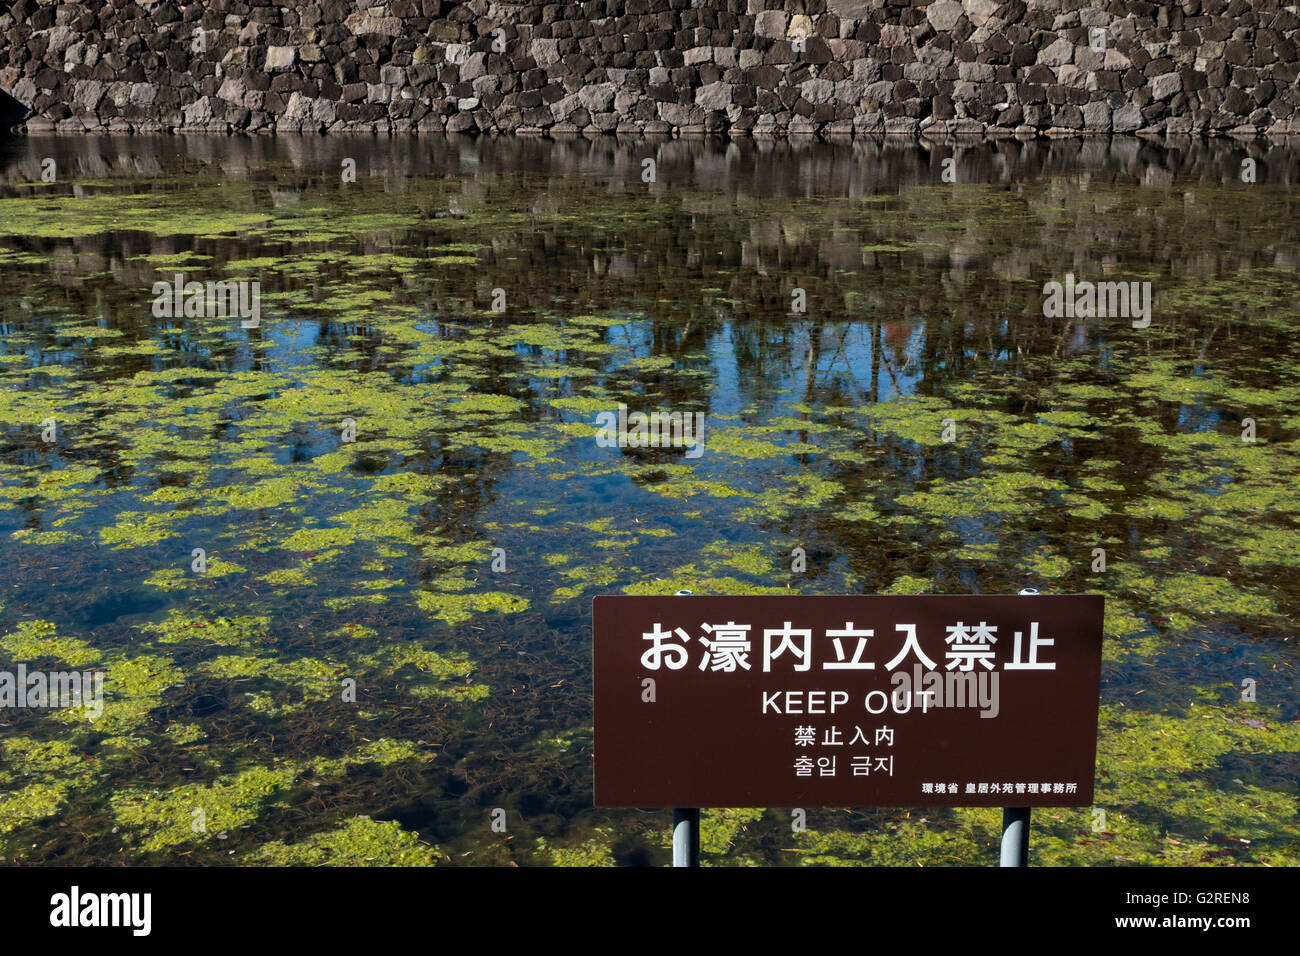 A sign warning people to keep out of the moat at the Imperial Palace in Tokyo, Japan. Friday December 18th 2015 - Stock Image